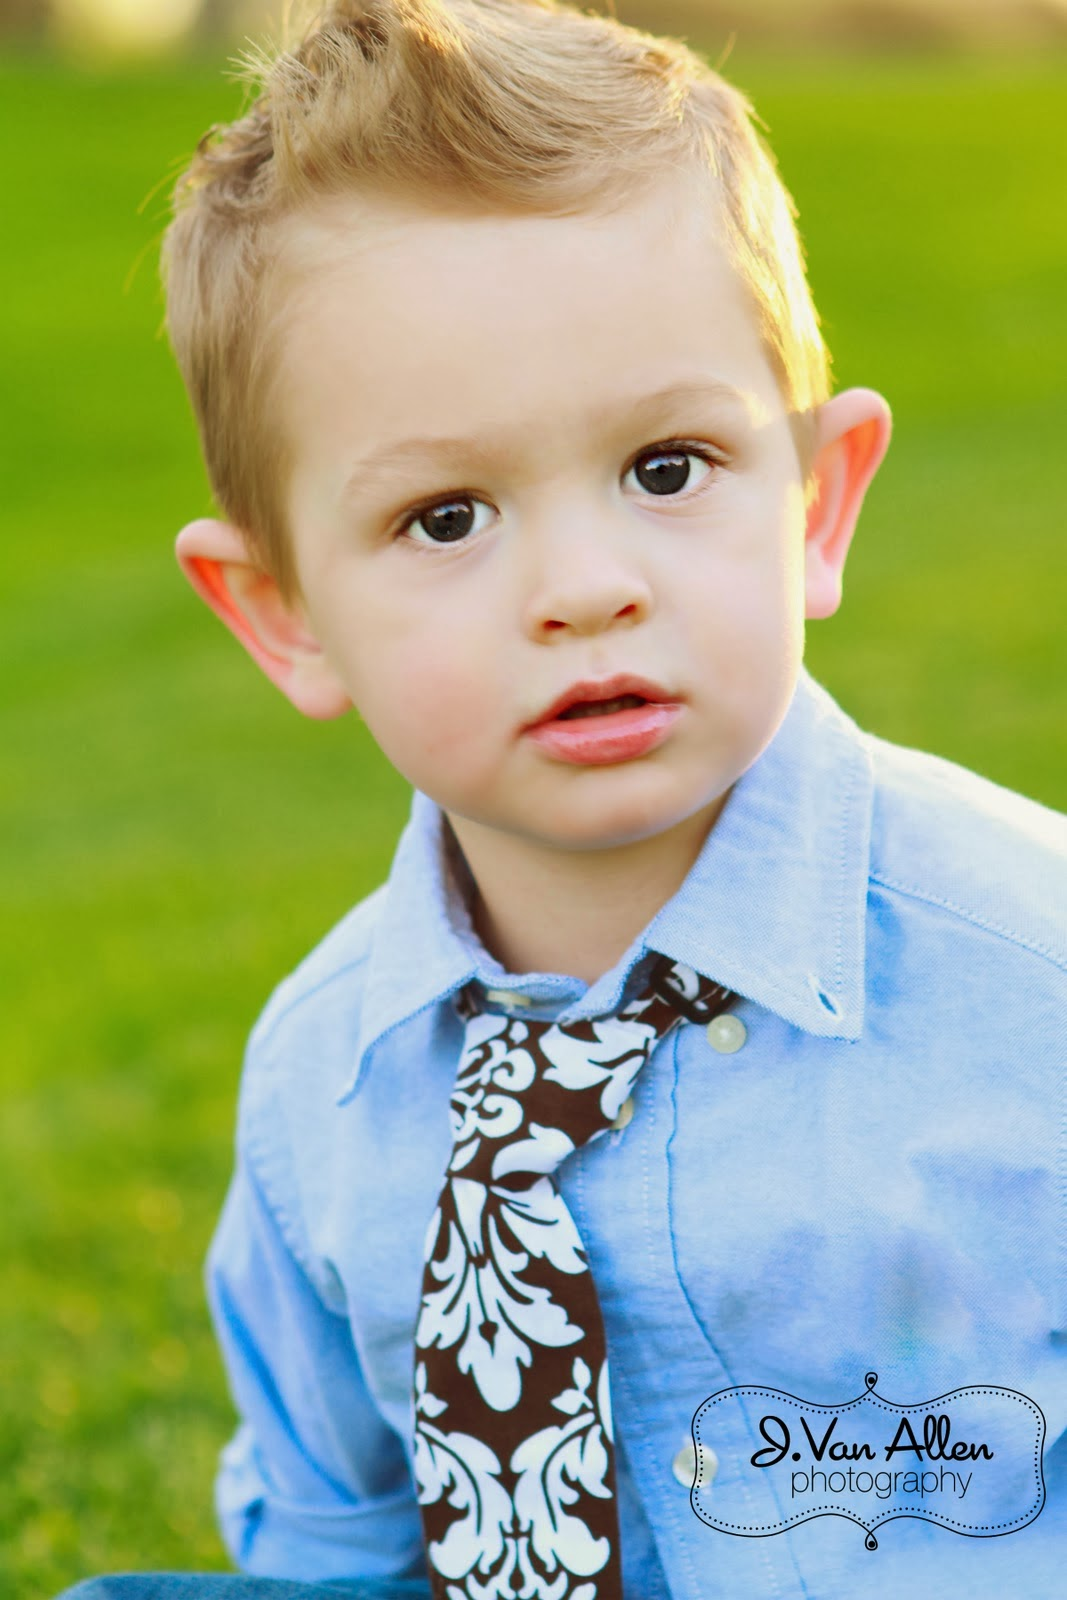 Cool Dashing Baby Boy Profile Picture For Facebook | AwesomeCoverz